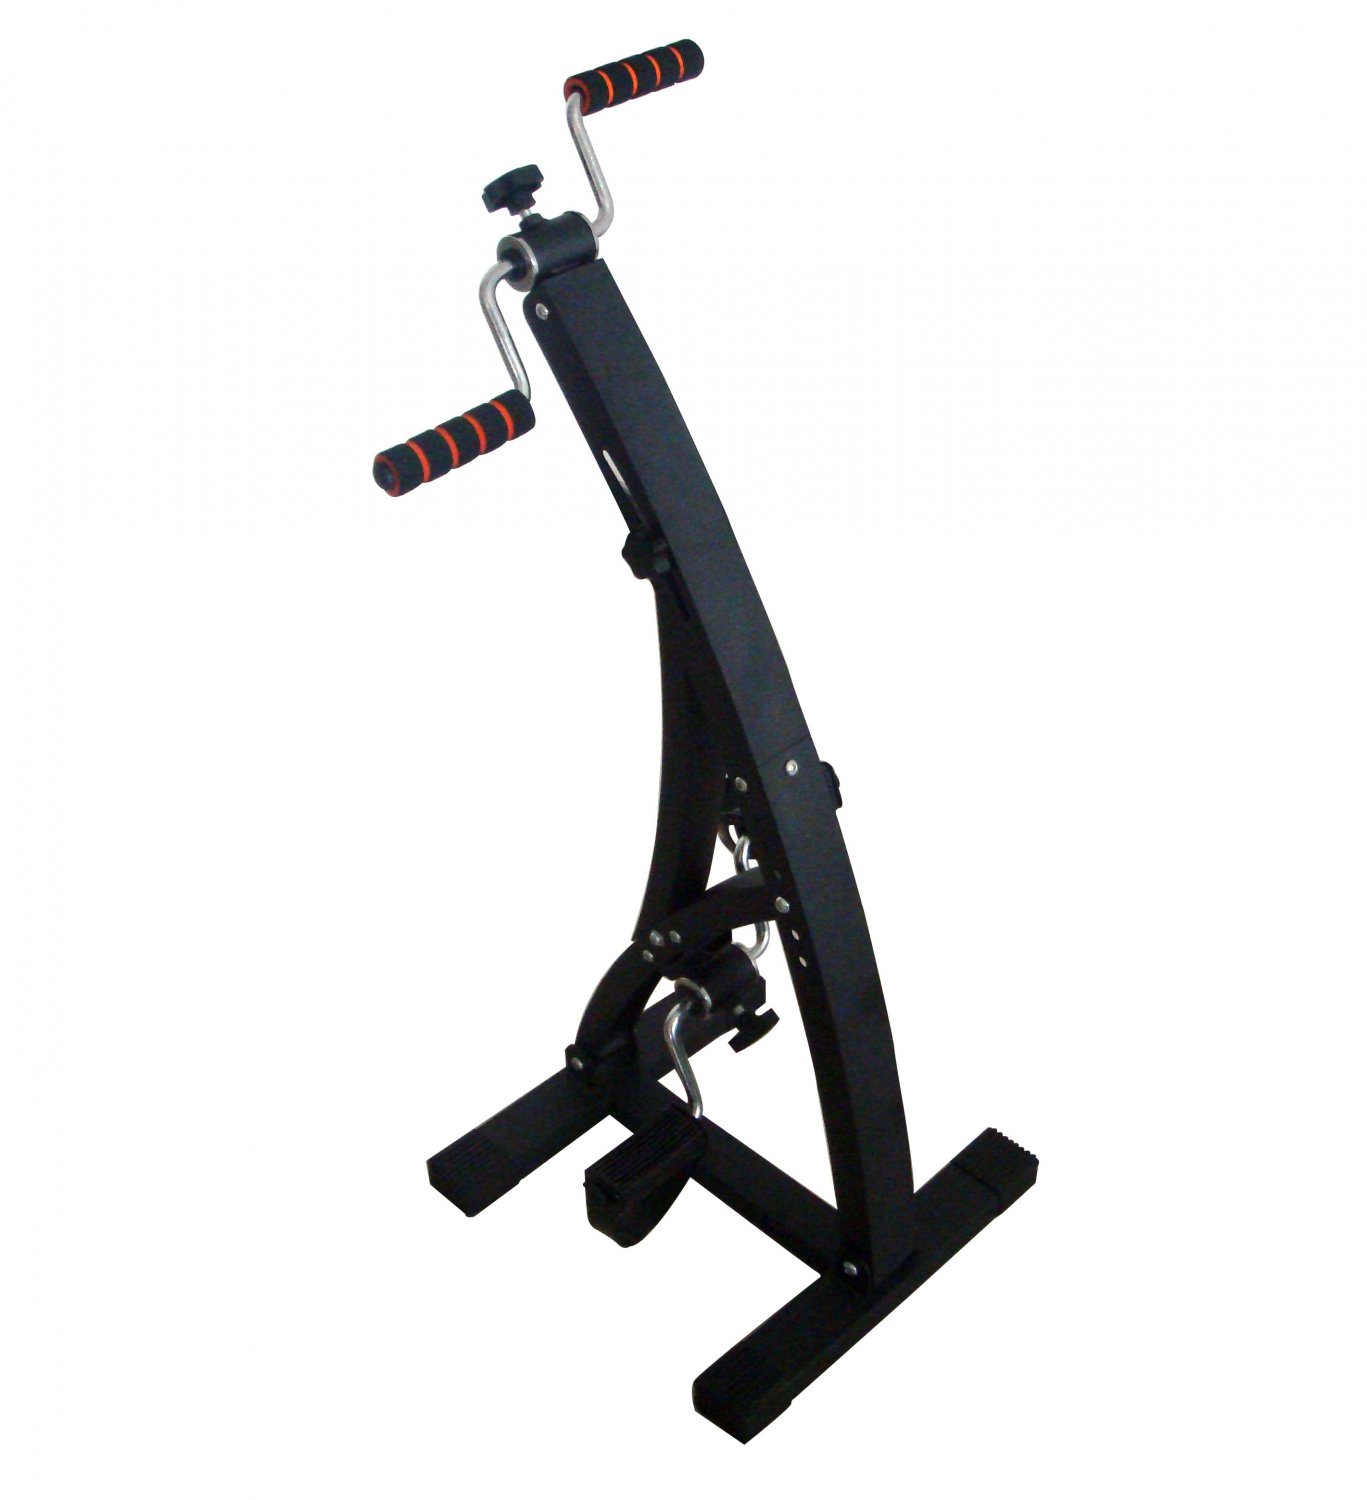 Carepeutic BetaFlex Total-Body Mini Exercise Bike Work Out for both Arms and Legs at the same time